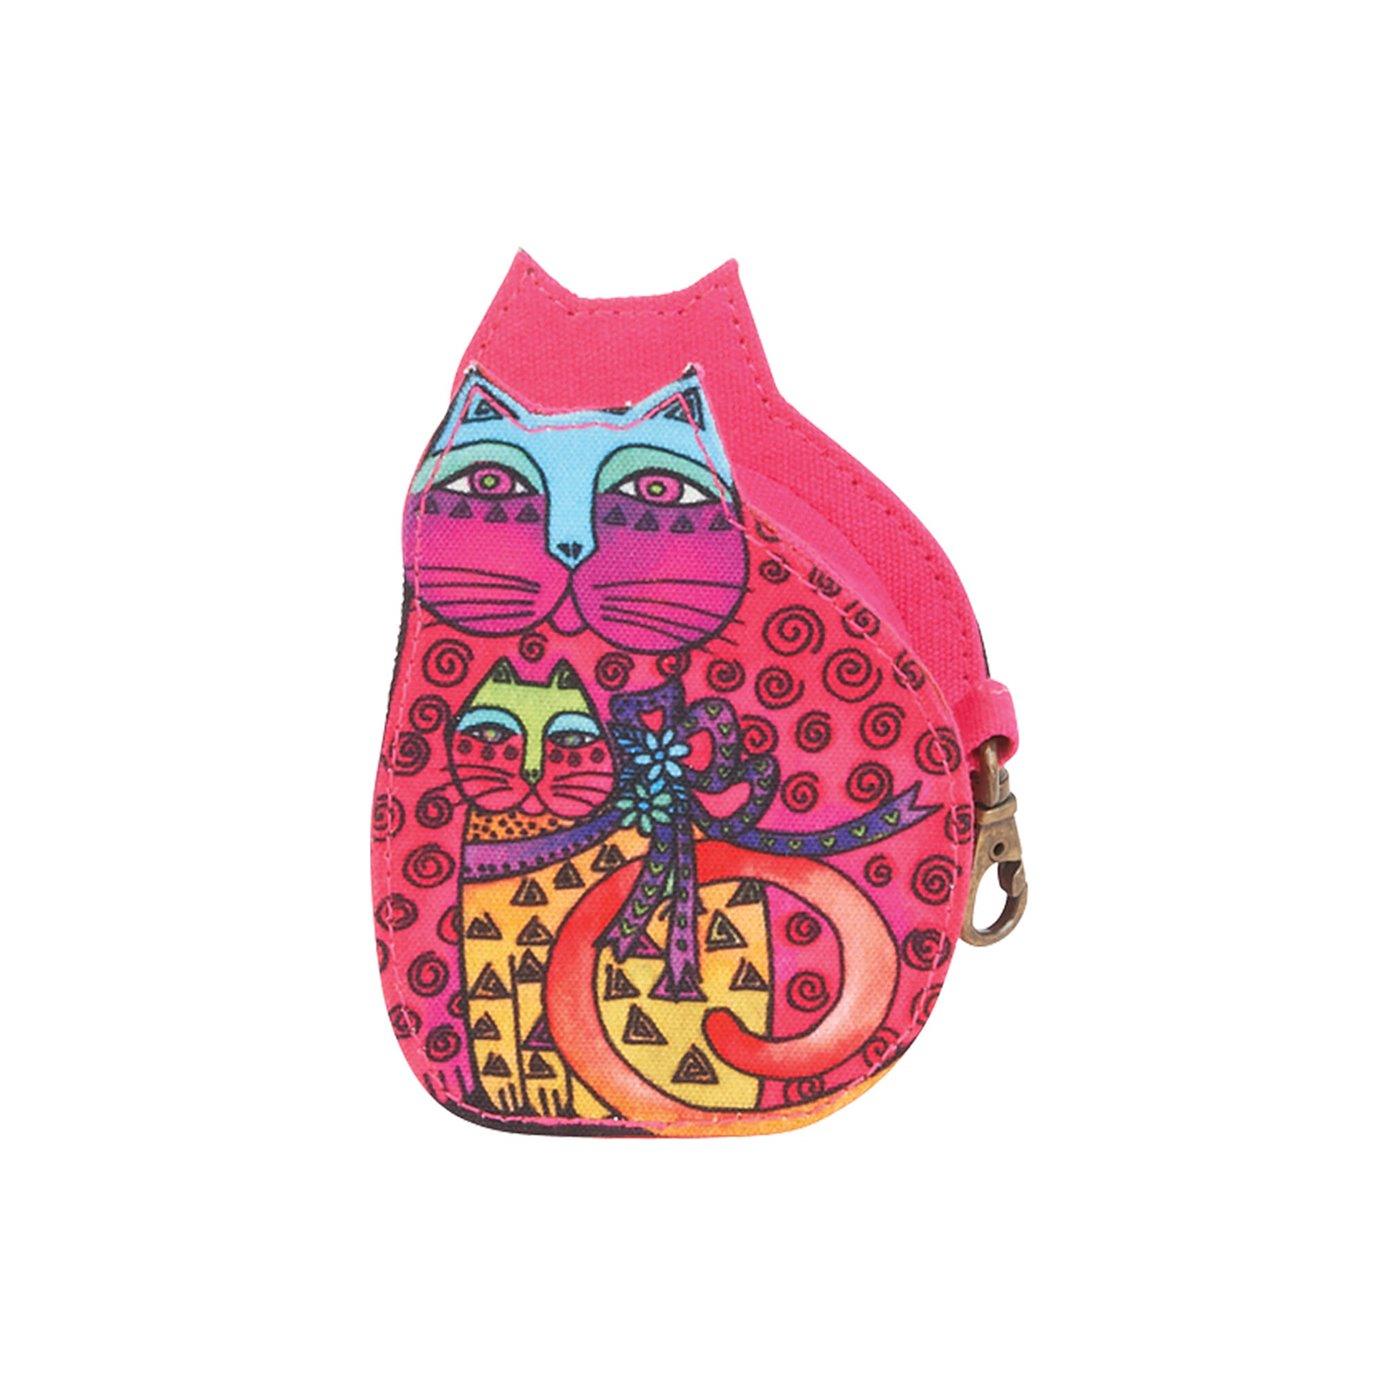 Laurel Burch Mother Daughter Cat Coin Purse - pink